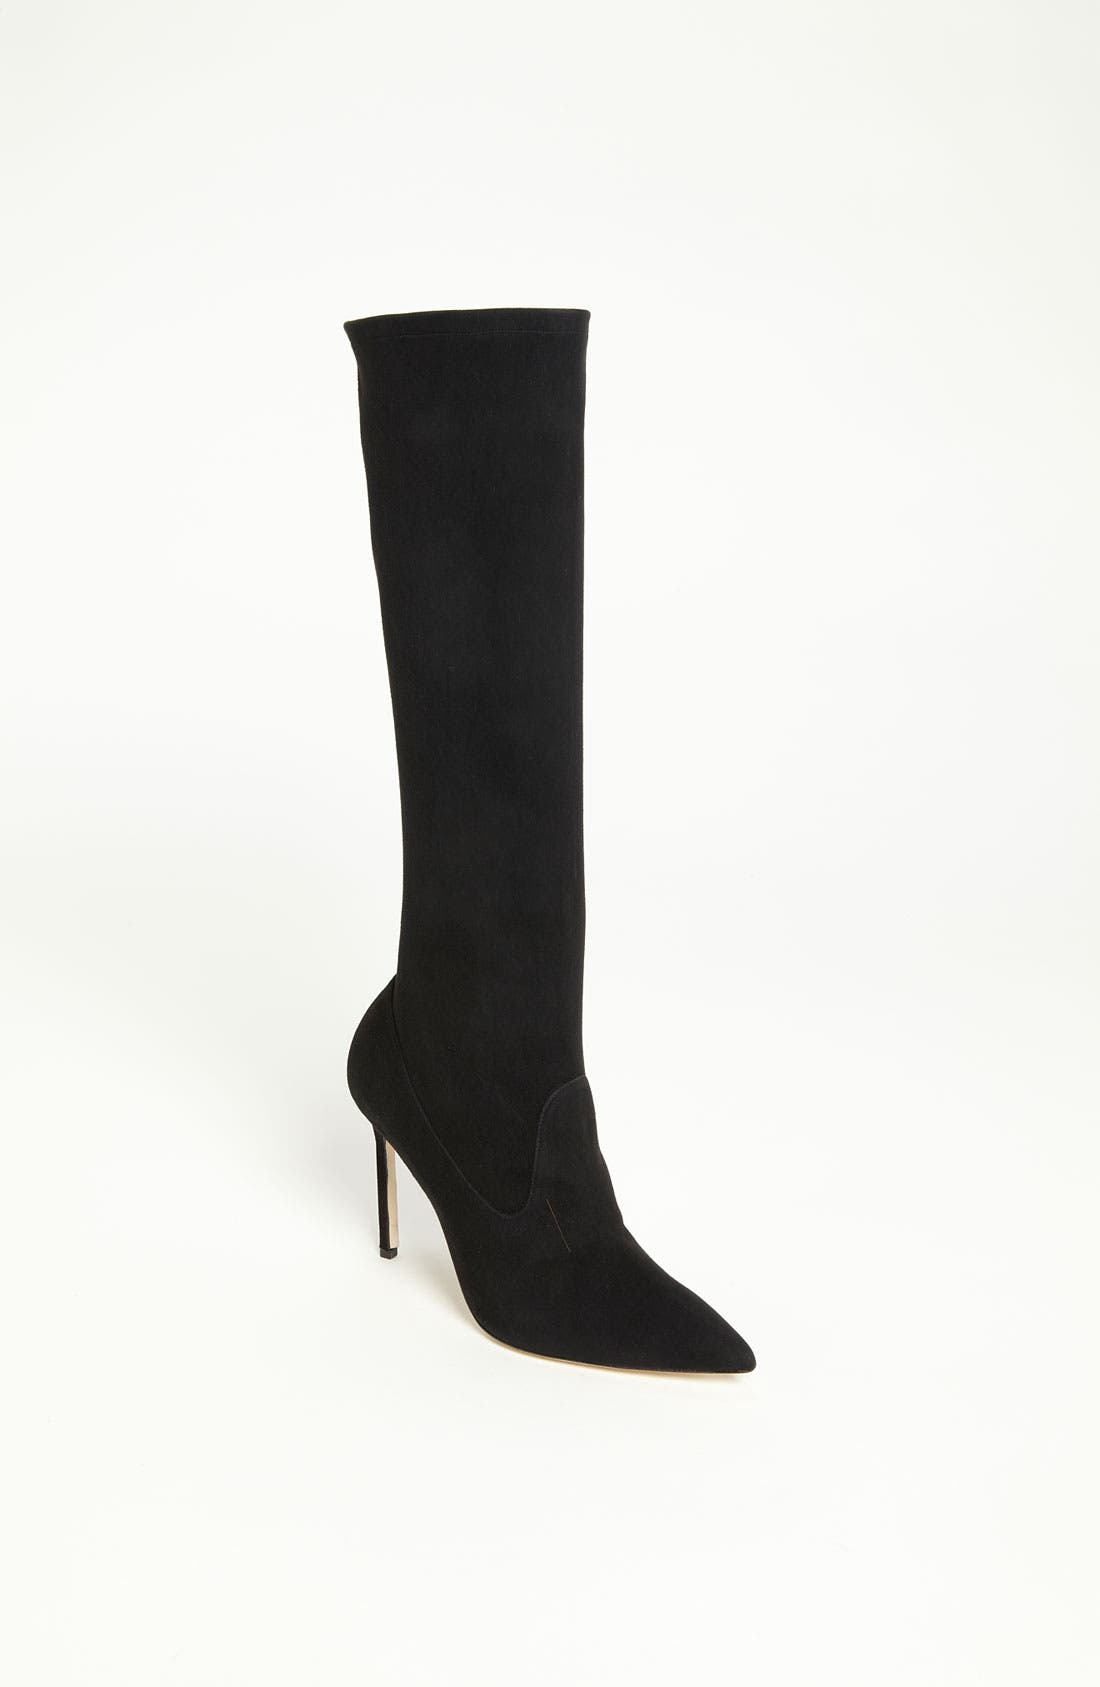 Main Image - Manolo Blahnik 'Pascalare' Tall Boot